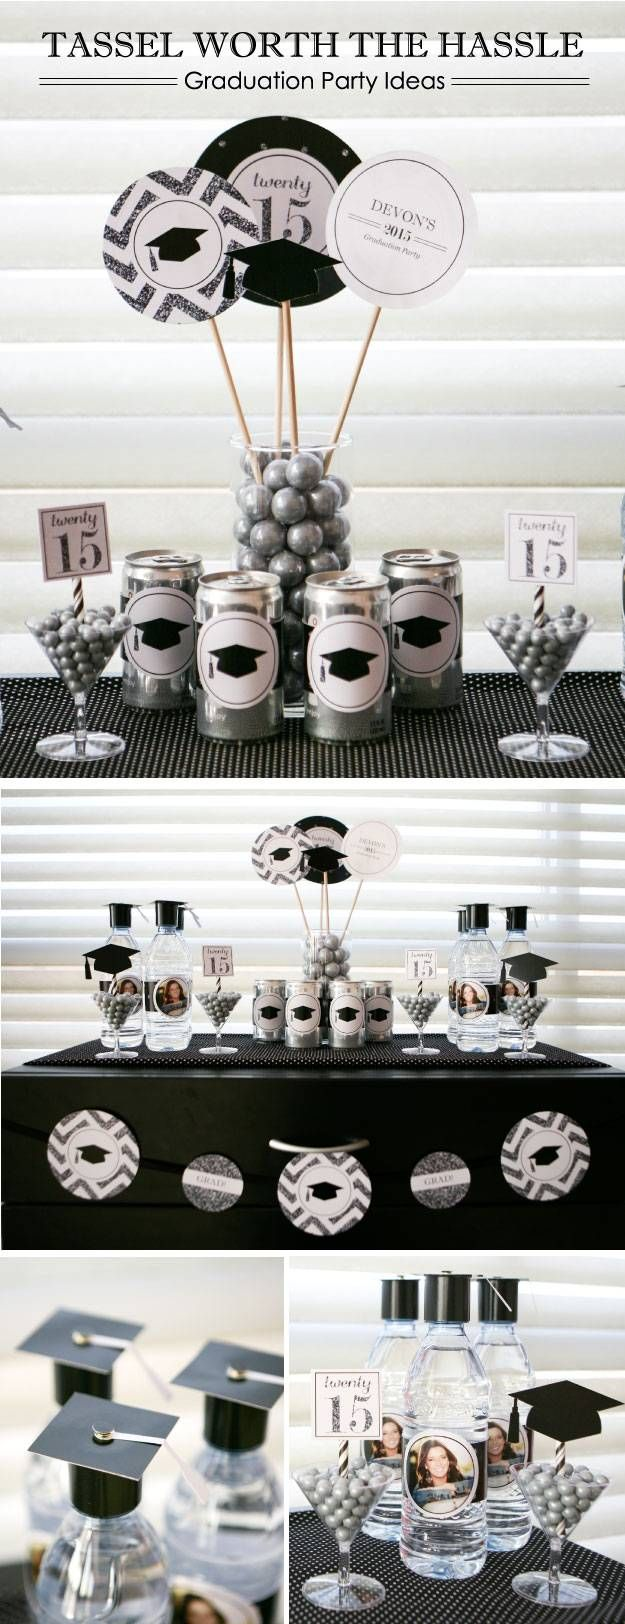 Tassle Worth the Hassle Graduation Party Theme - Black and White Party Supplies with Glitter Accents